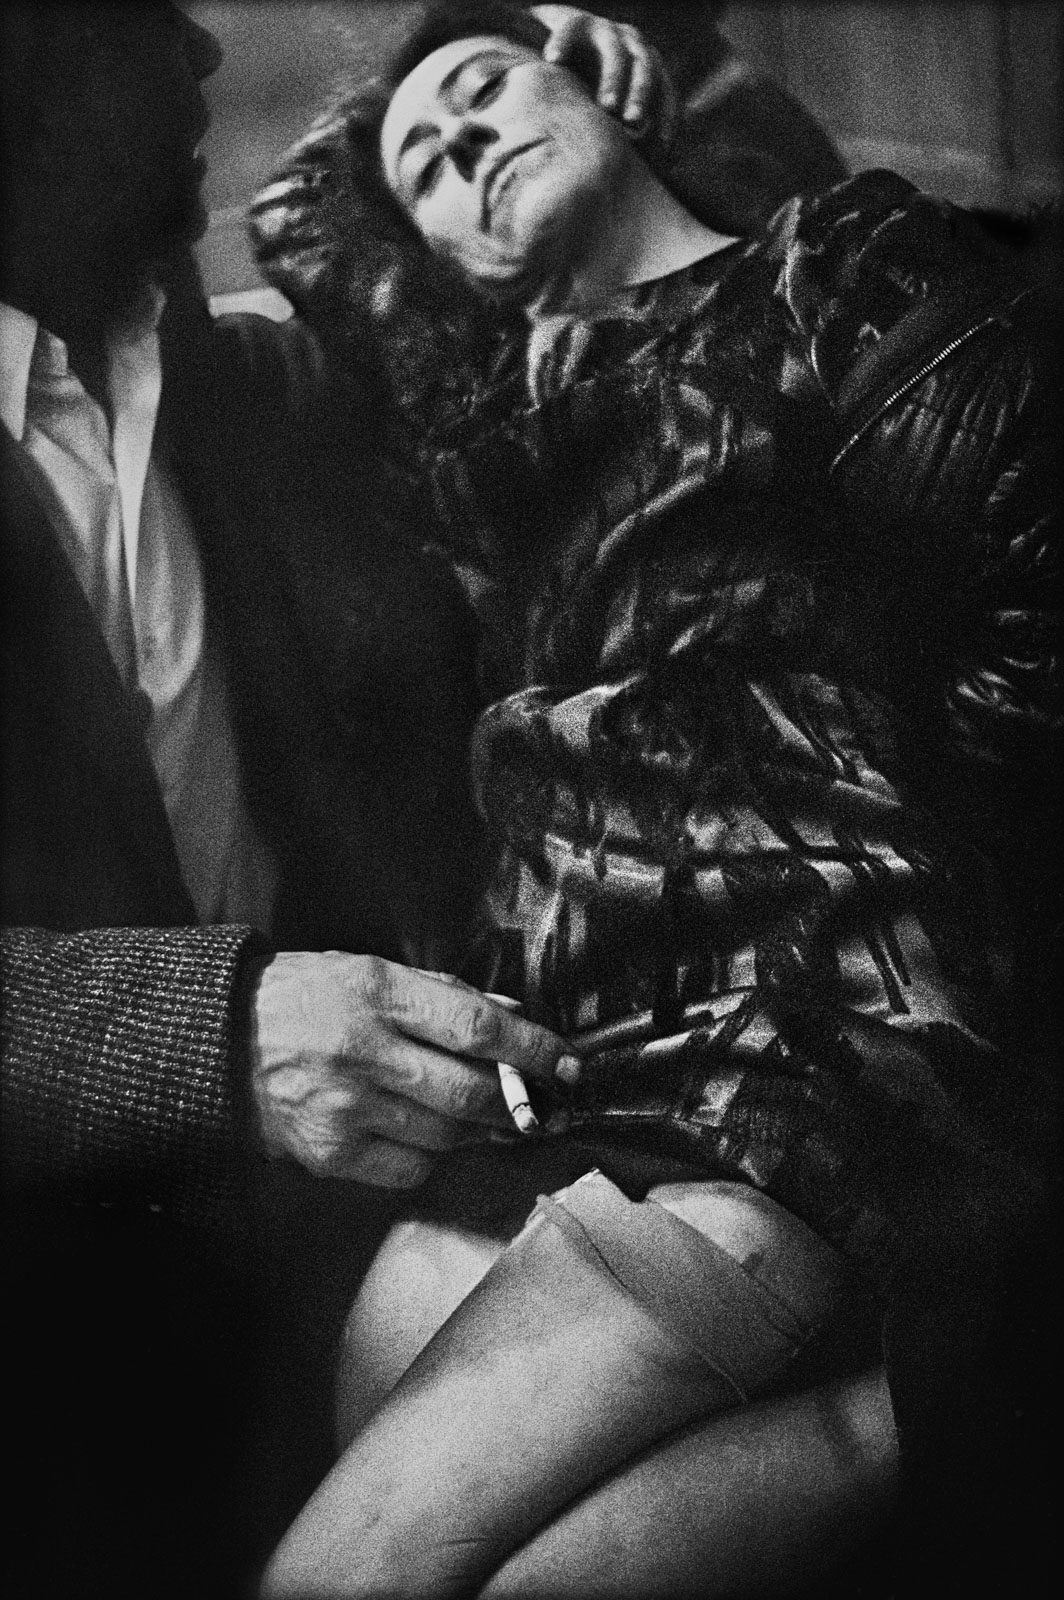 Uschi with man, from 'Café Lehmitz' series, 1970